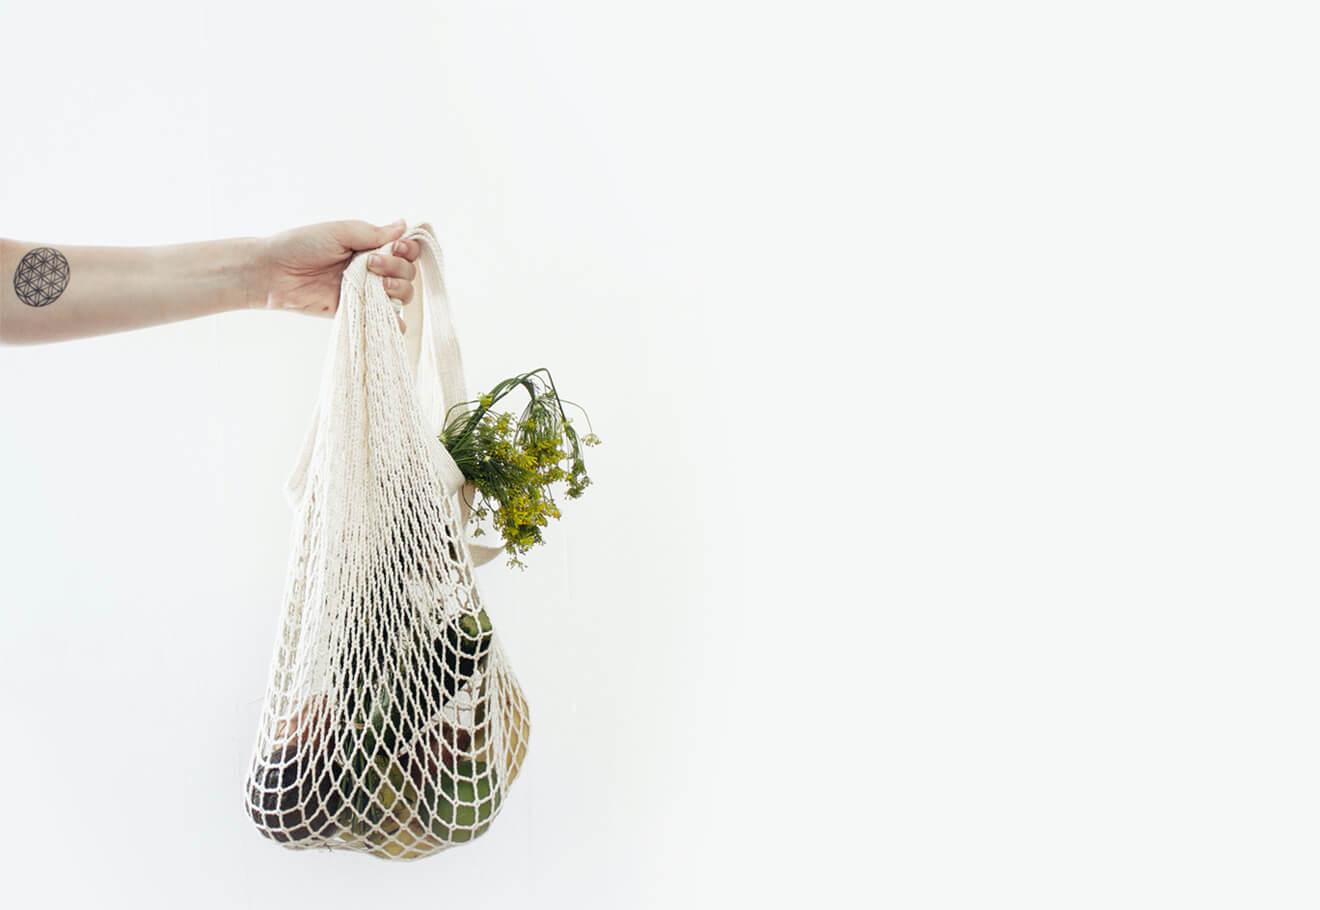 Reusable grocery bag with plastic-free items